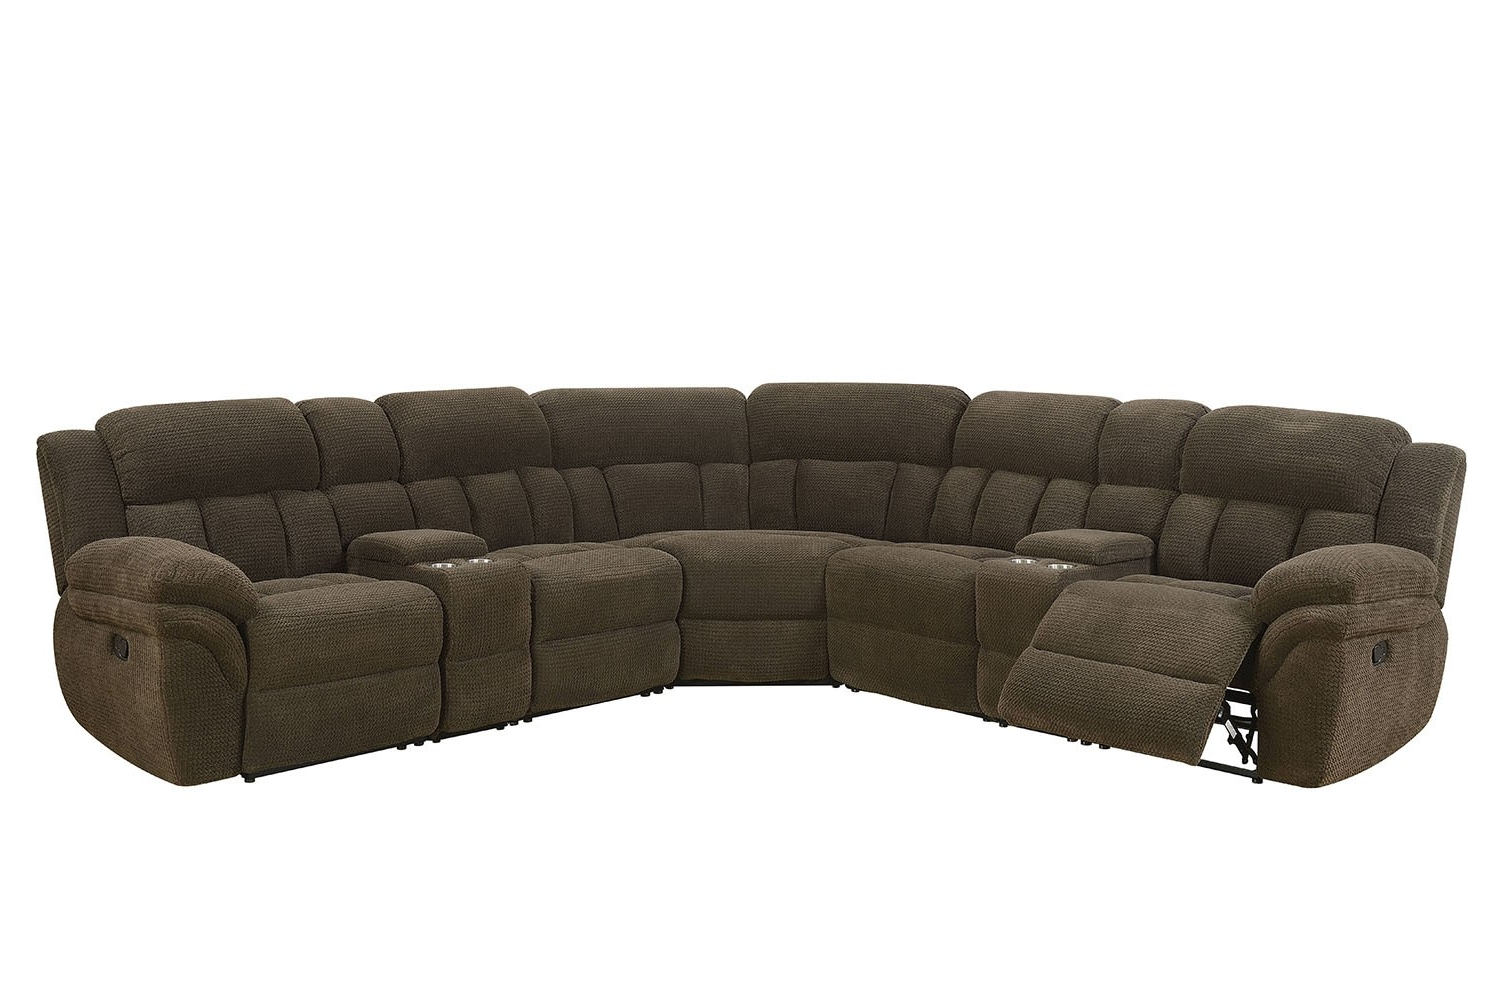 Latest Aspen 2 Piece Sleeper Sectionals With Laf Chaise With Sectional Sofas (Gallery 10 of 20)